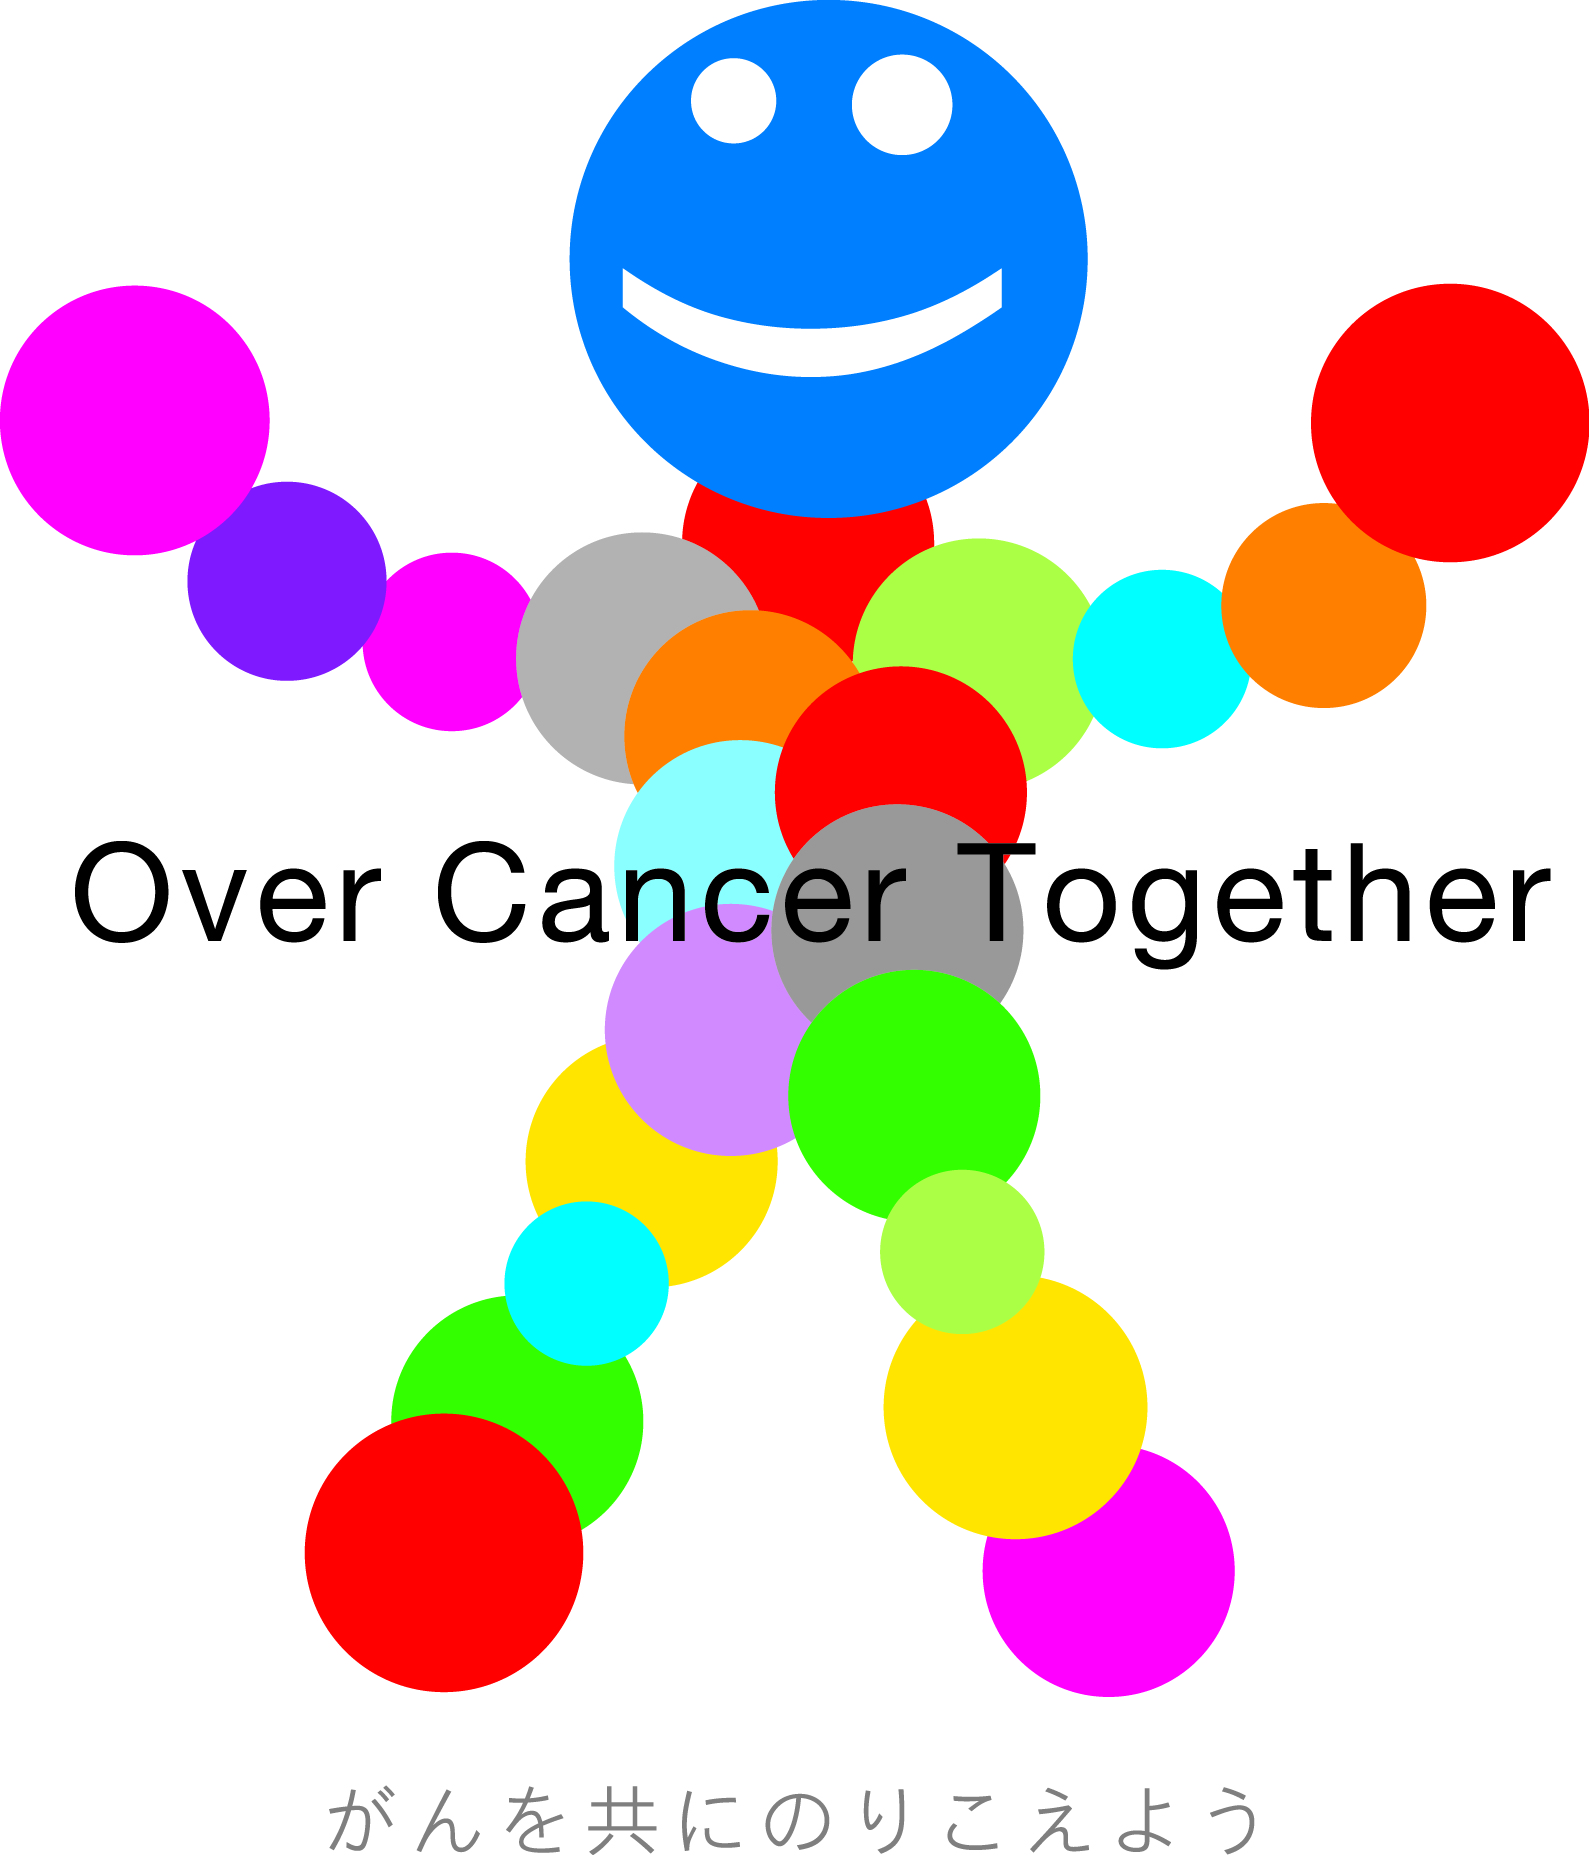 Over Cancer Together Campaign Official Website Open